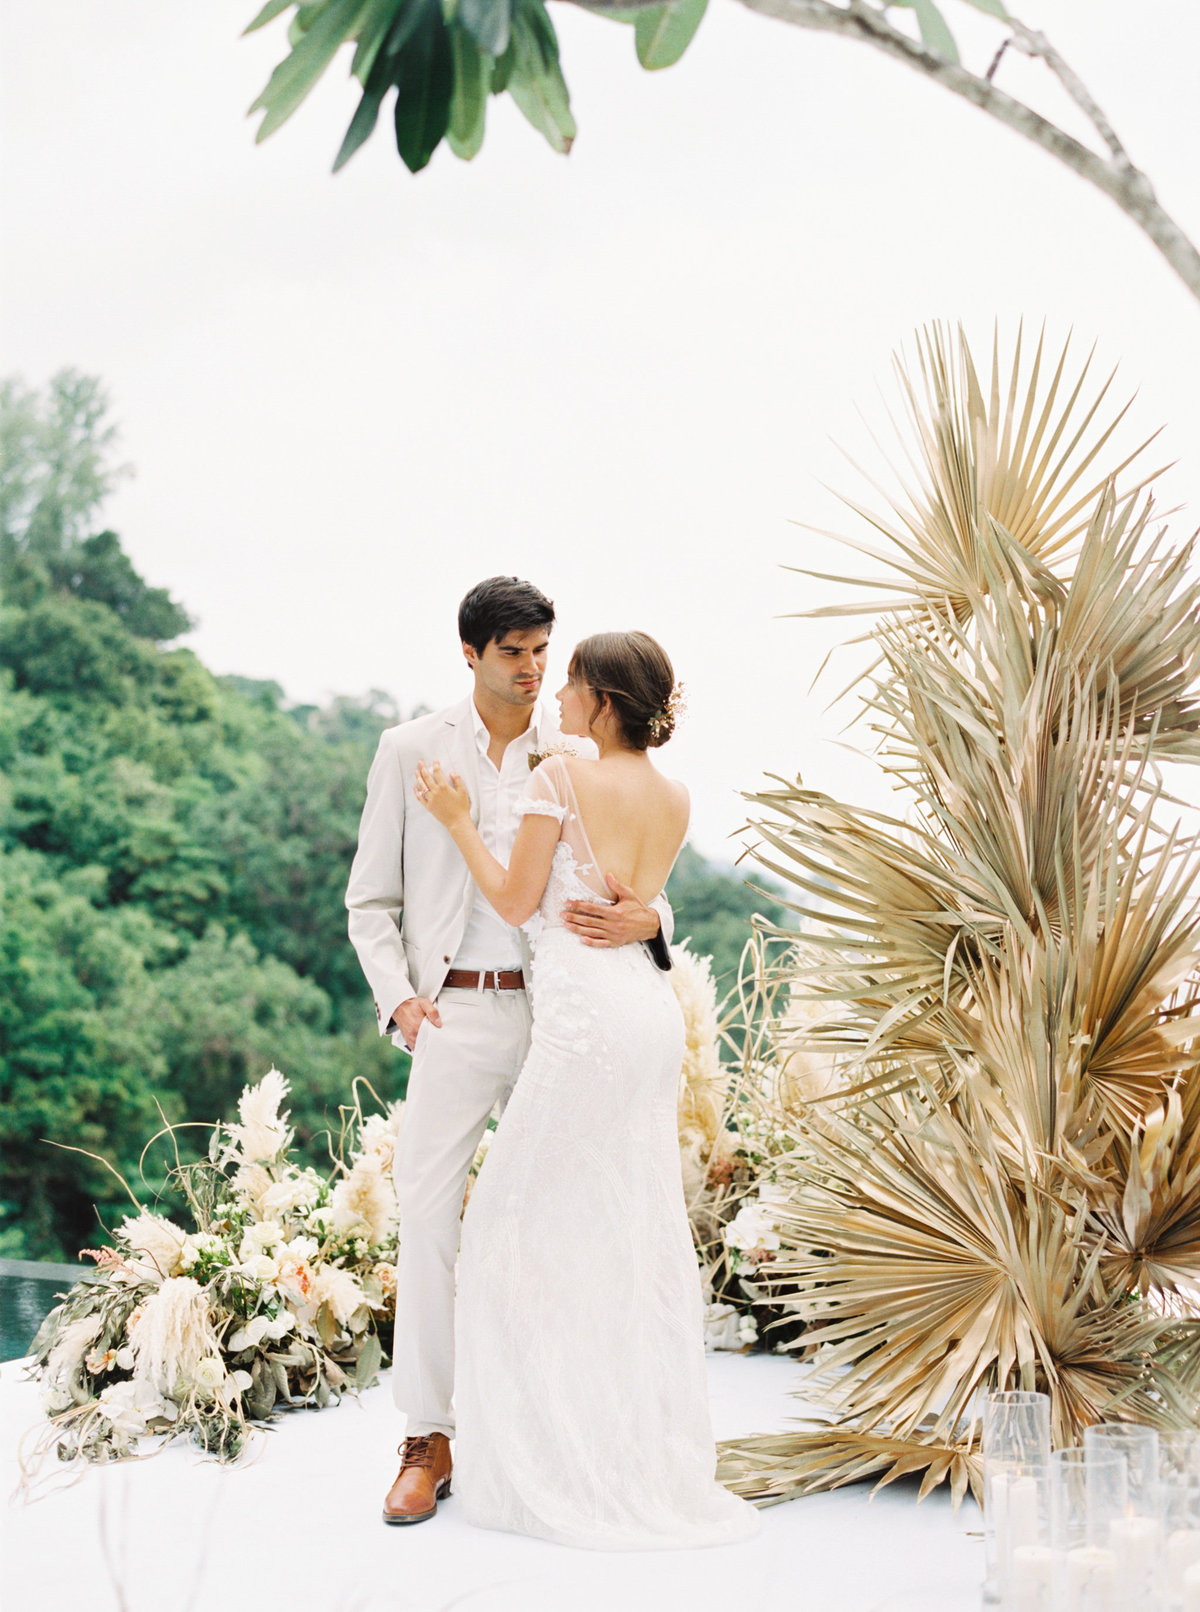 Destination Wedding Phuket Thailand Fine Art Film Photographer Sheri McMahon-00001